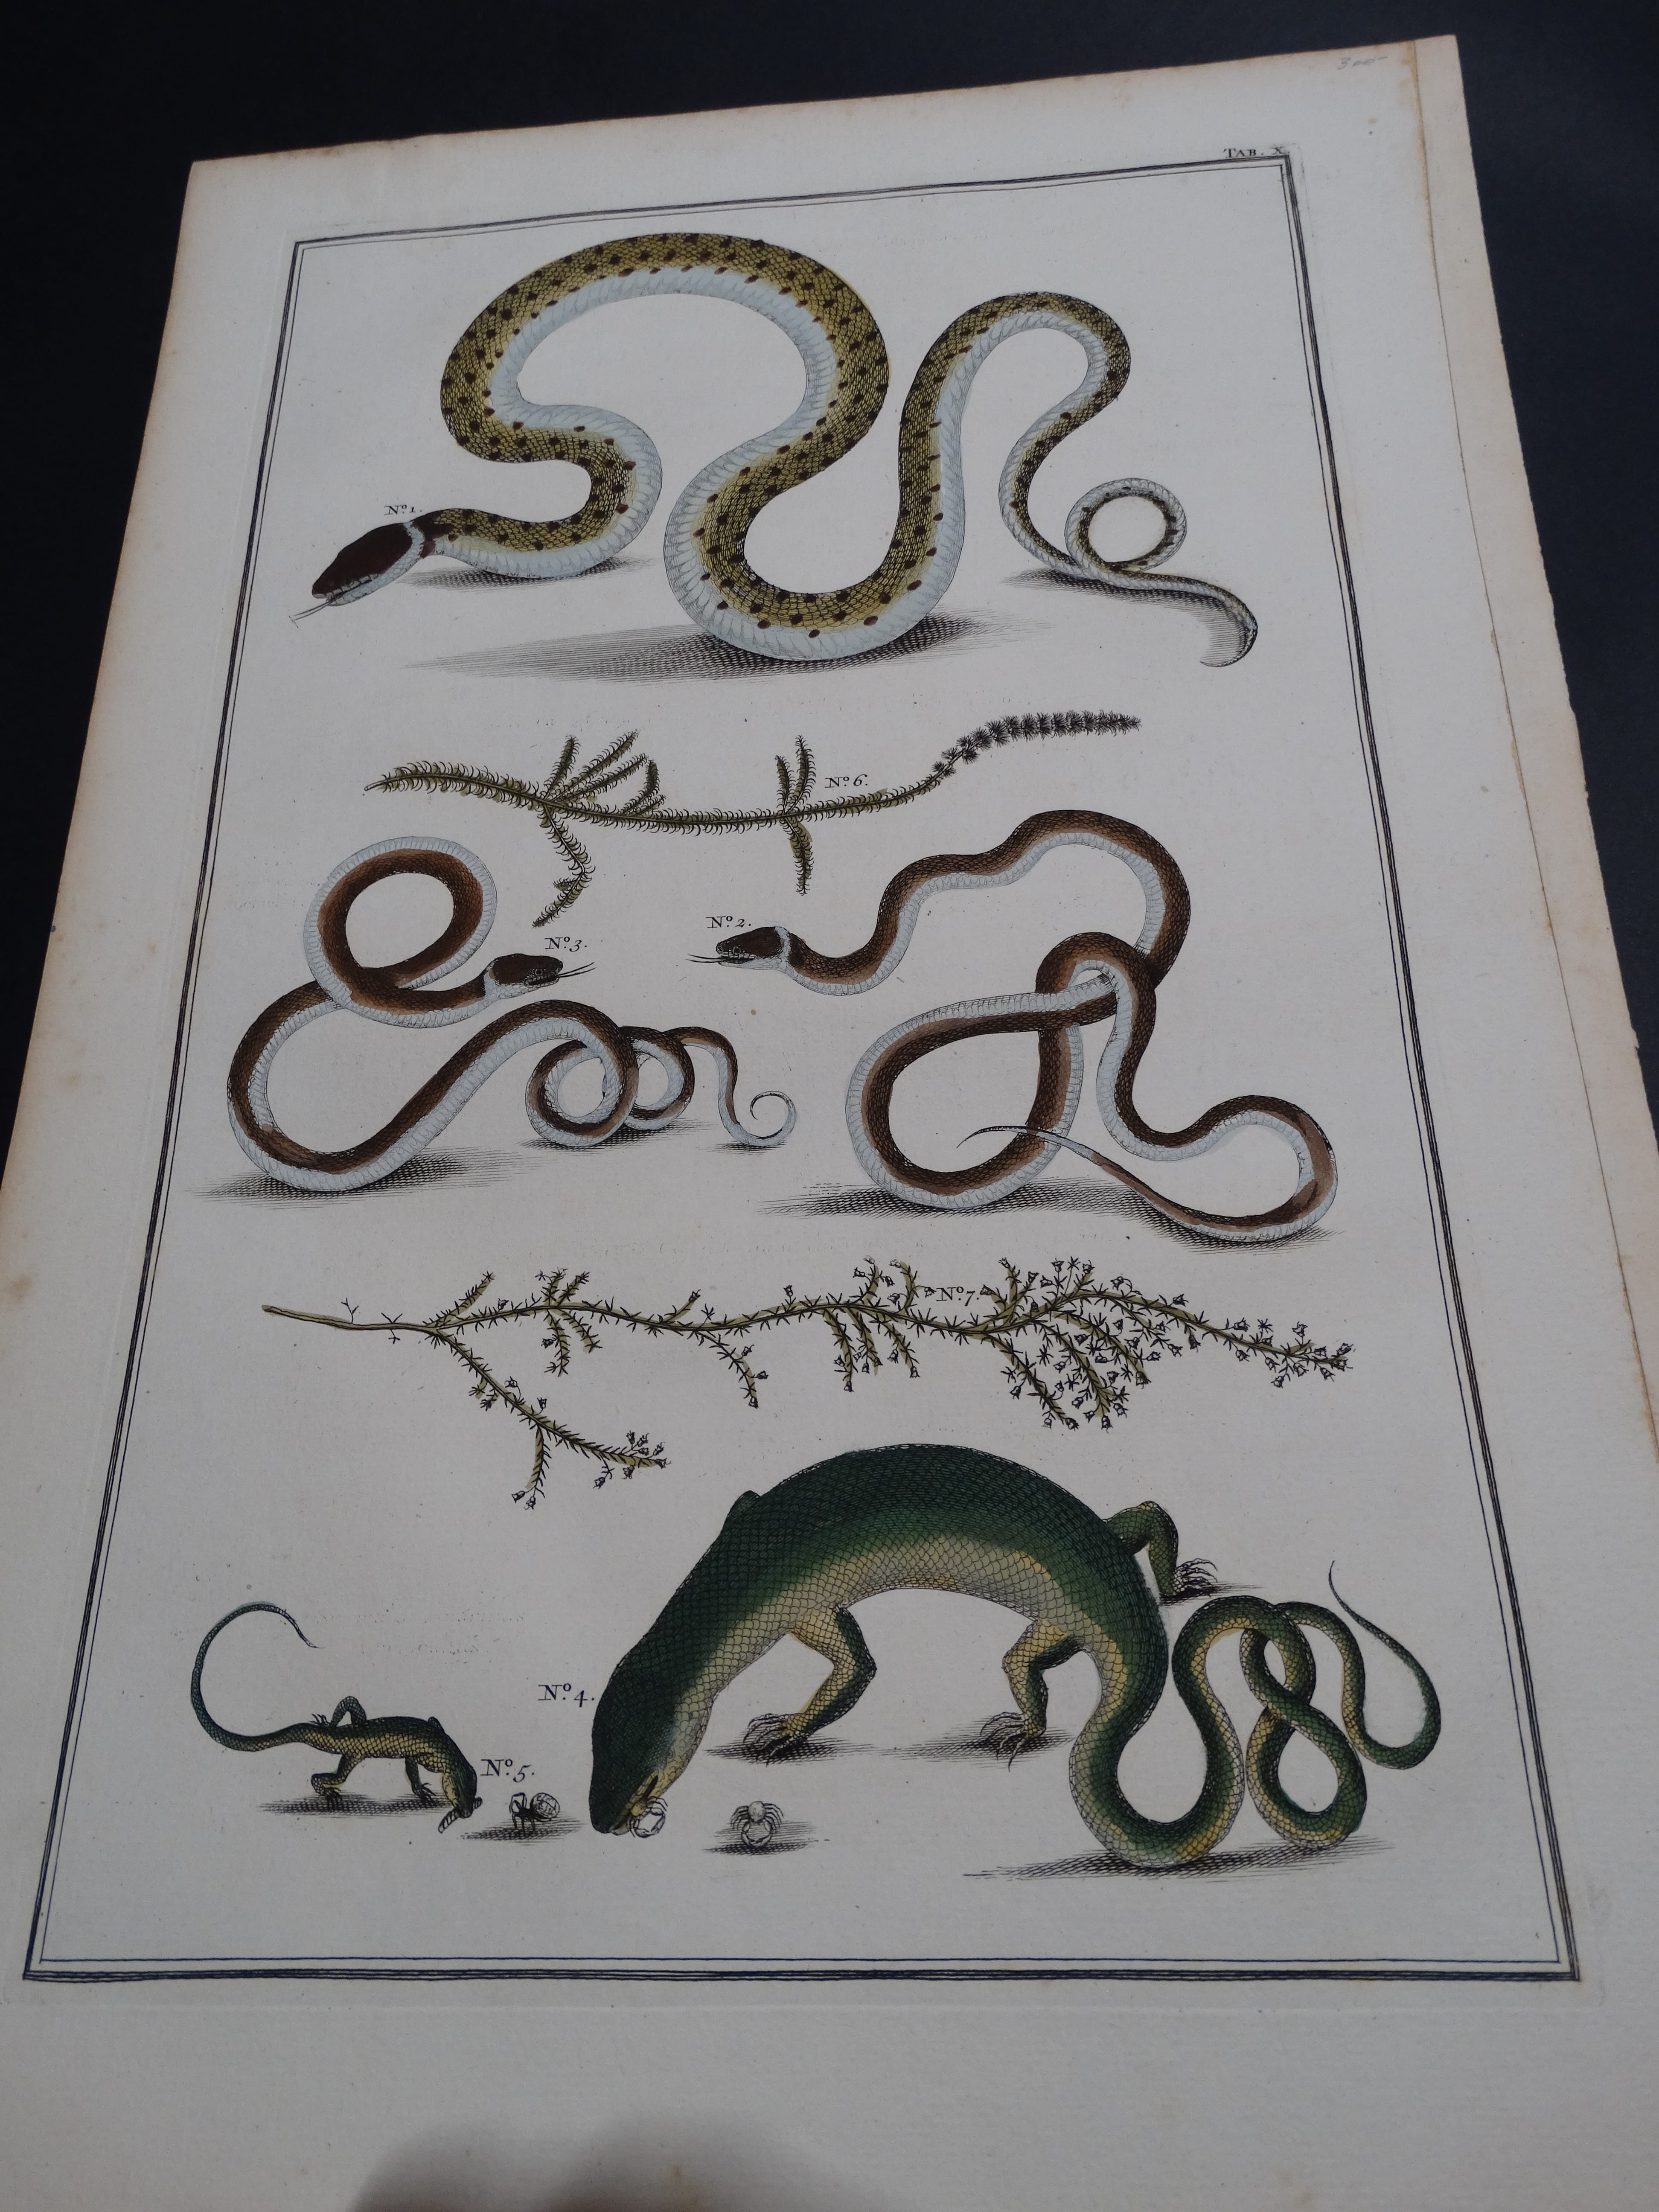 Albertus Seba Lizards and Snakes Pl. X